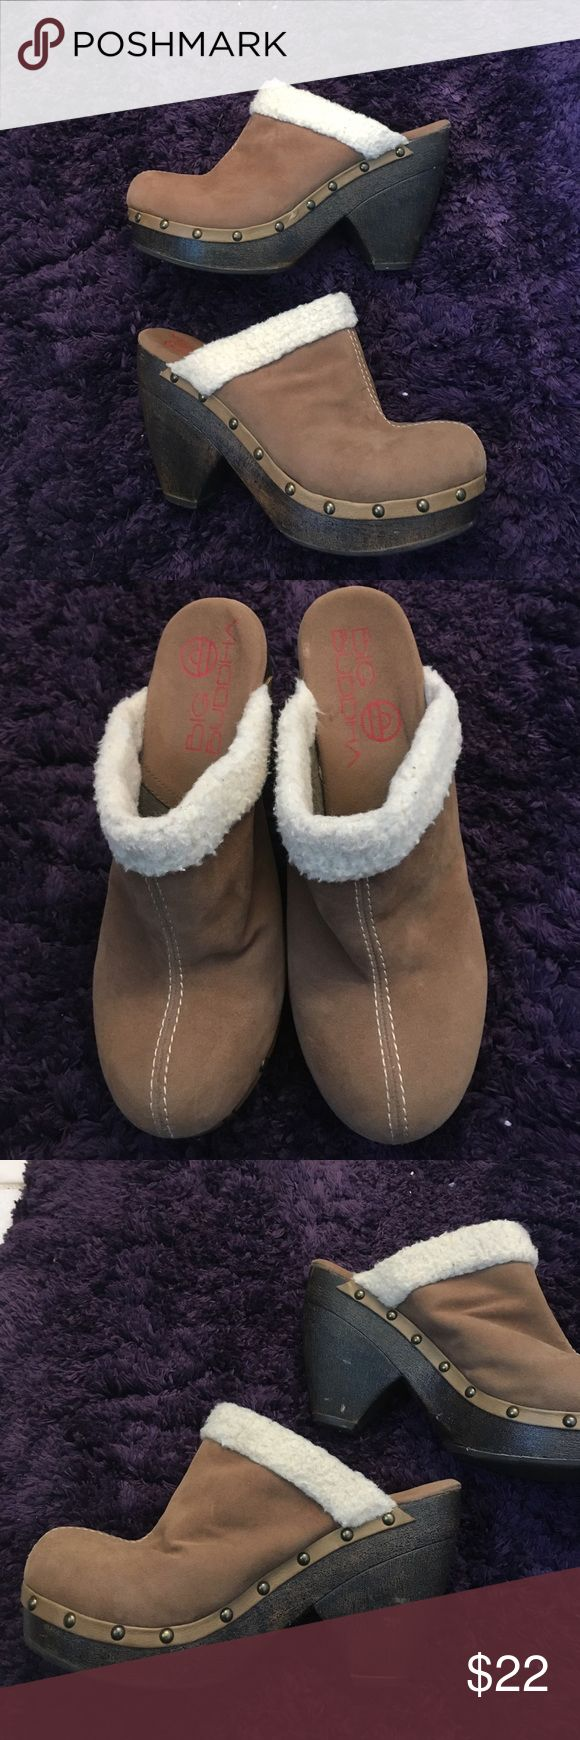 """Big Buddha clogs size 9 Very comfy big Buddha Vegan tan leather w/faux shearling trim. 4"""" heels. Rivet details around foot. Slight wear on heel & little dings on inside heels. Not noticeable when wearing. Great for fall! 9M Big Buddha Shoes Mules & Clogs"""